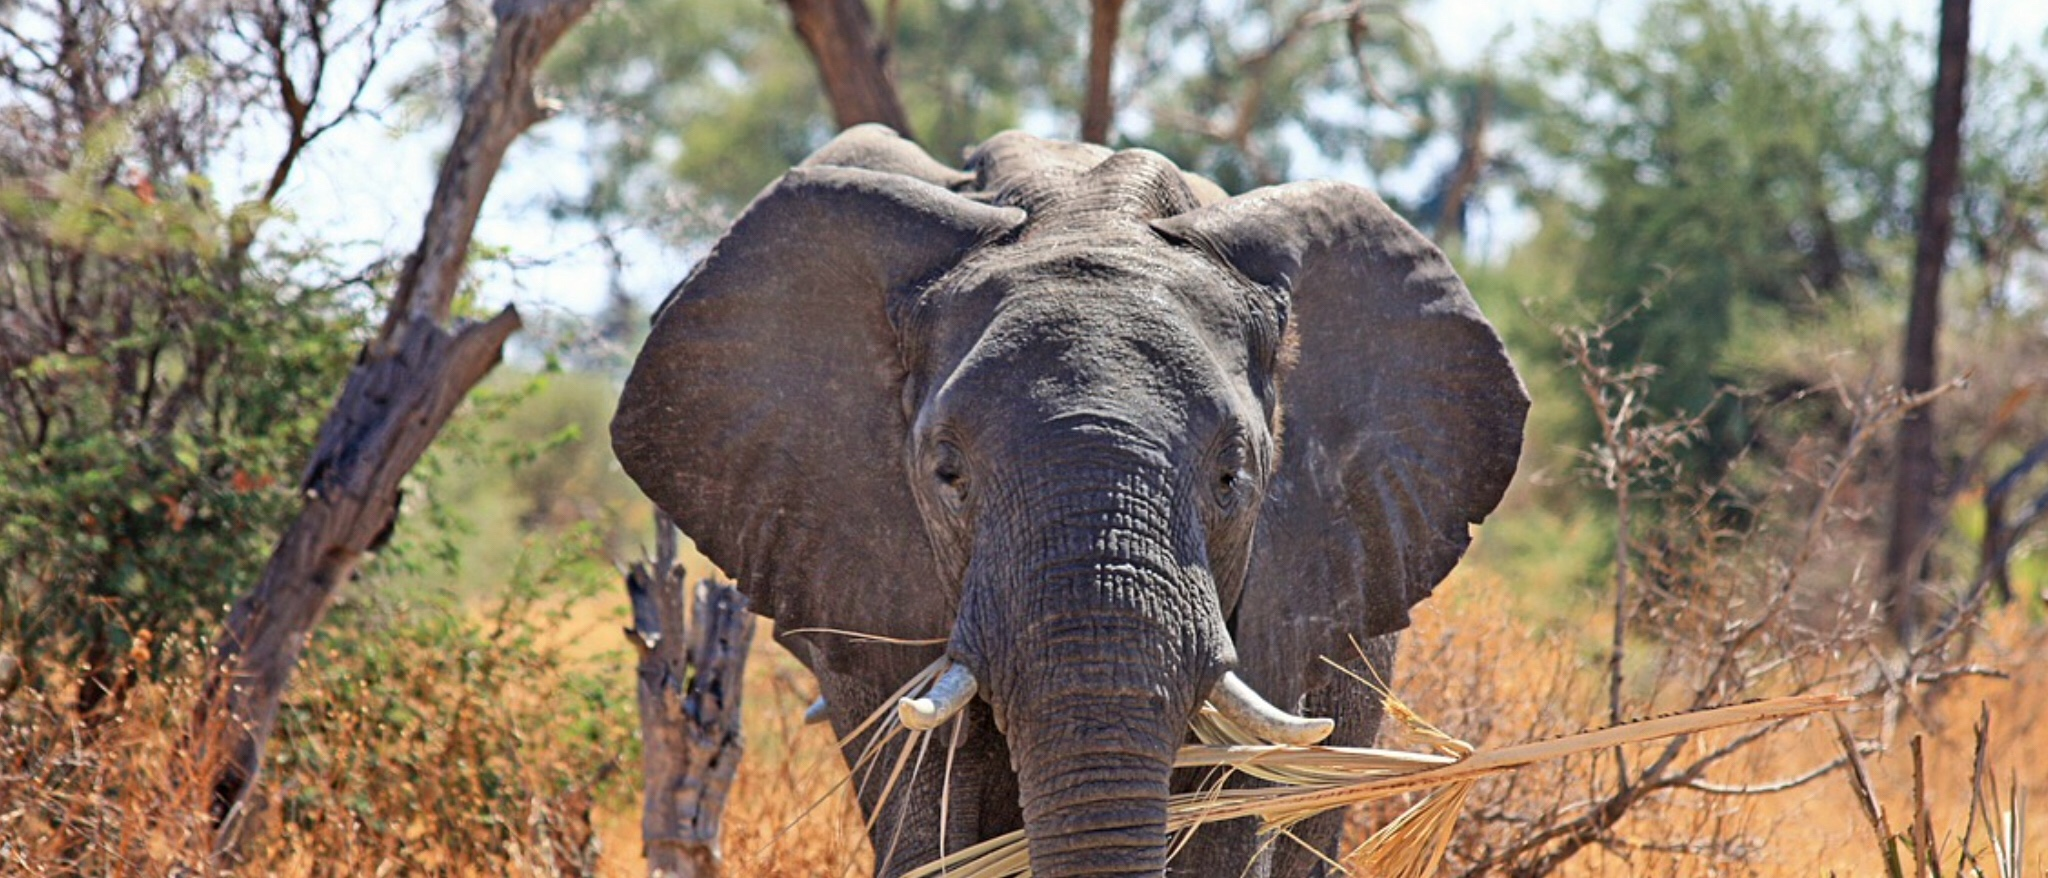 Botswana investigates elephants mysterious deaths